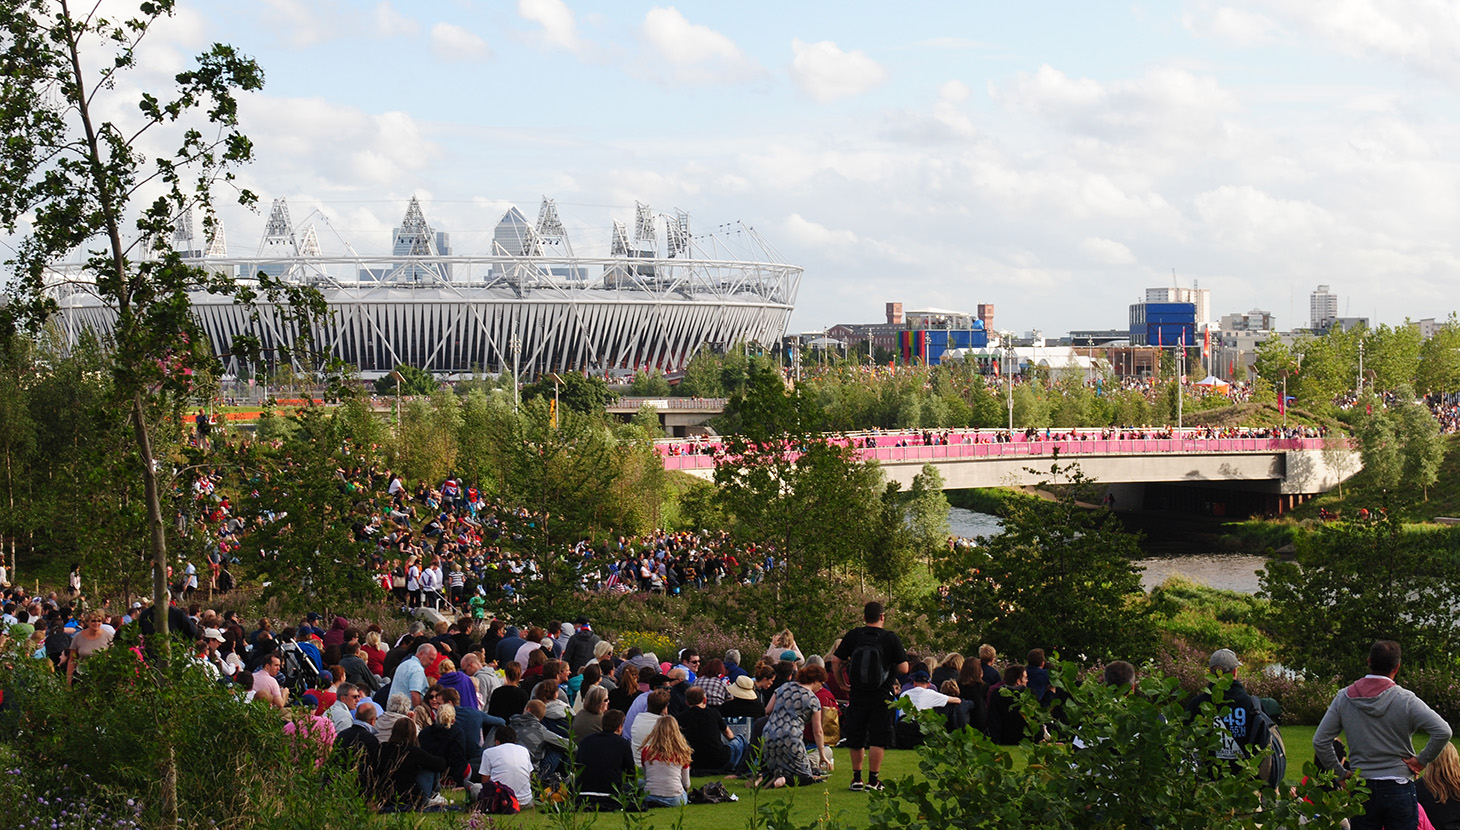 The London 2012 Games ph. Simon